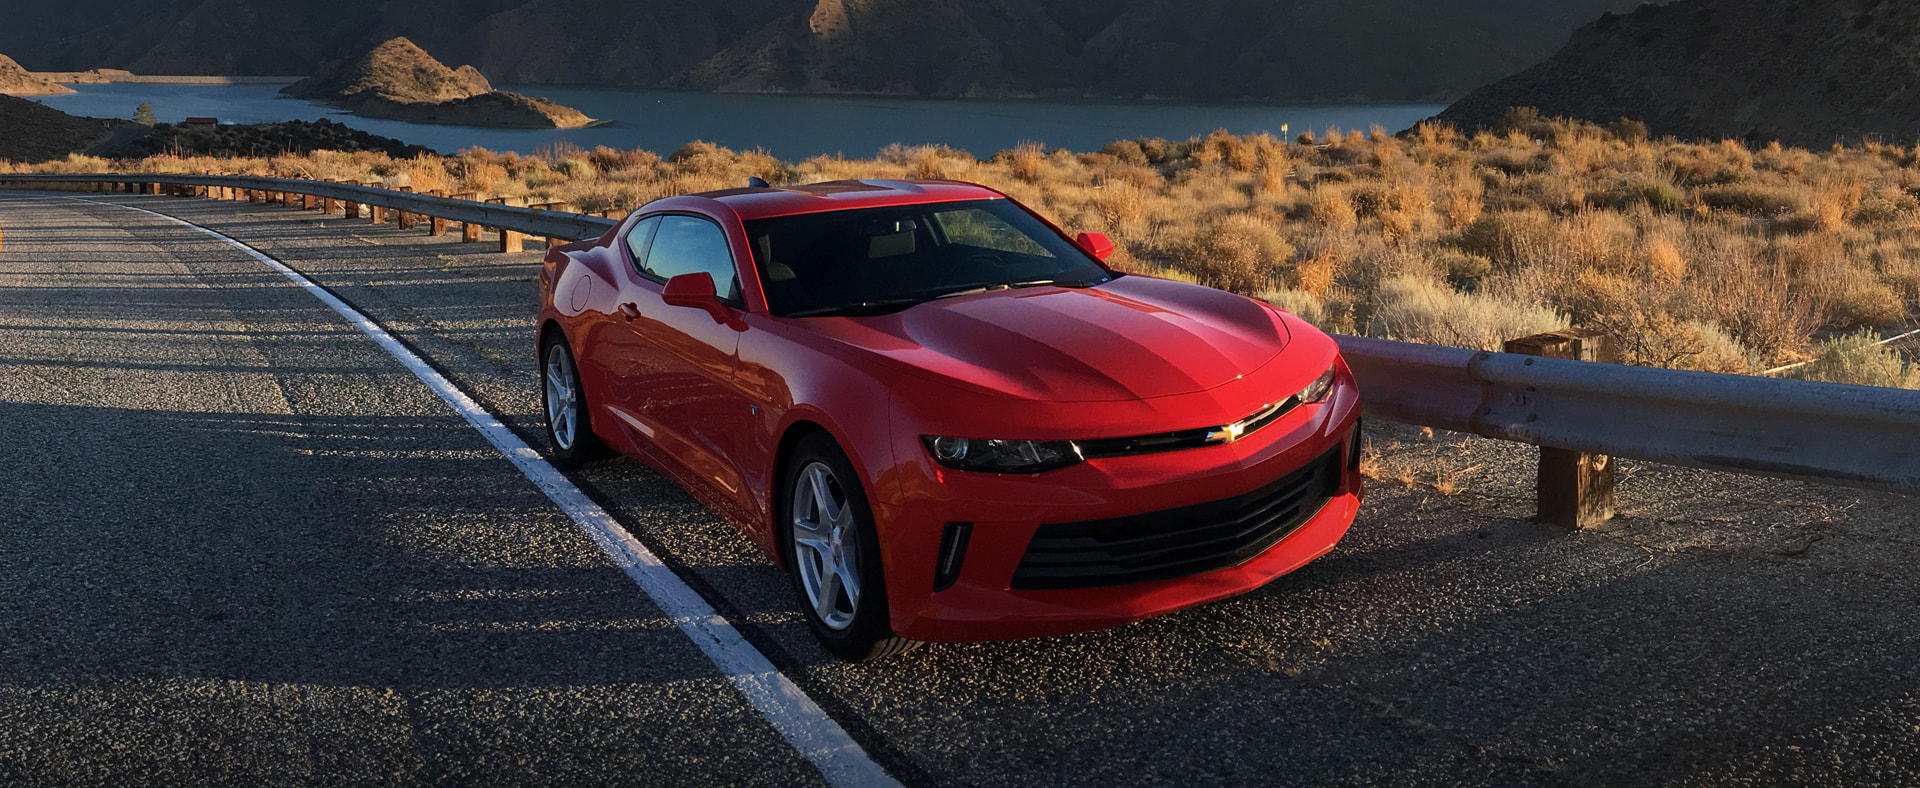 More Muscles For The Chevrolet Camaro 2 0l Turbo Racechip News